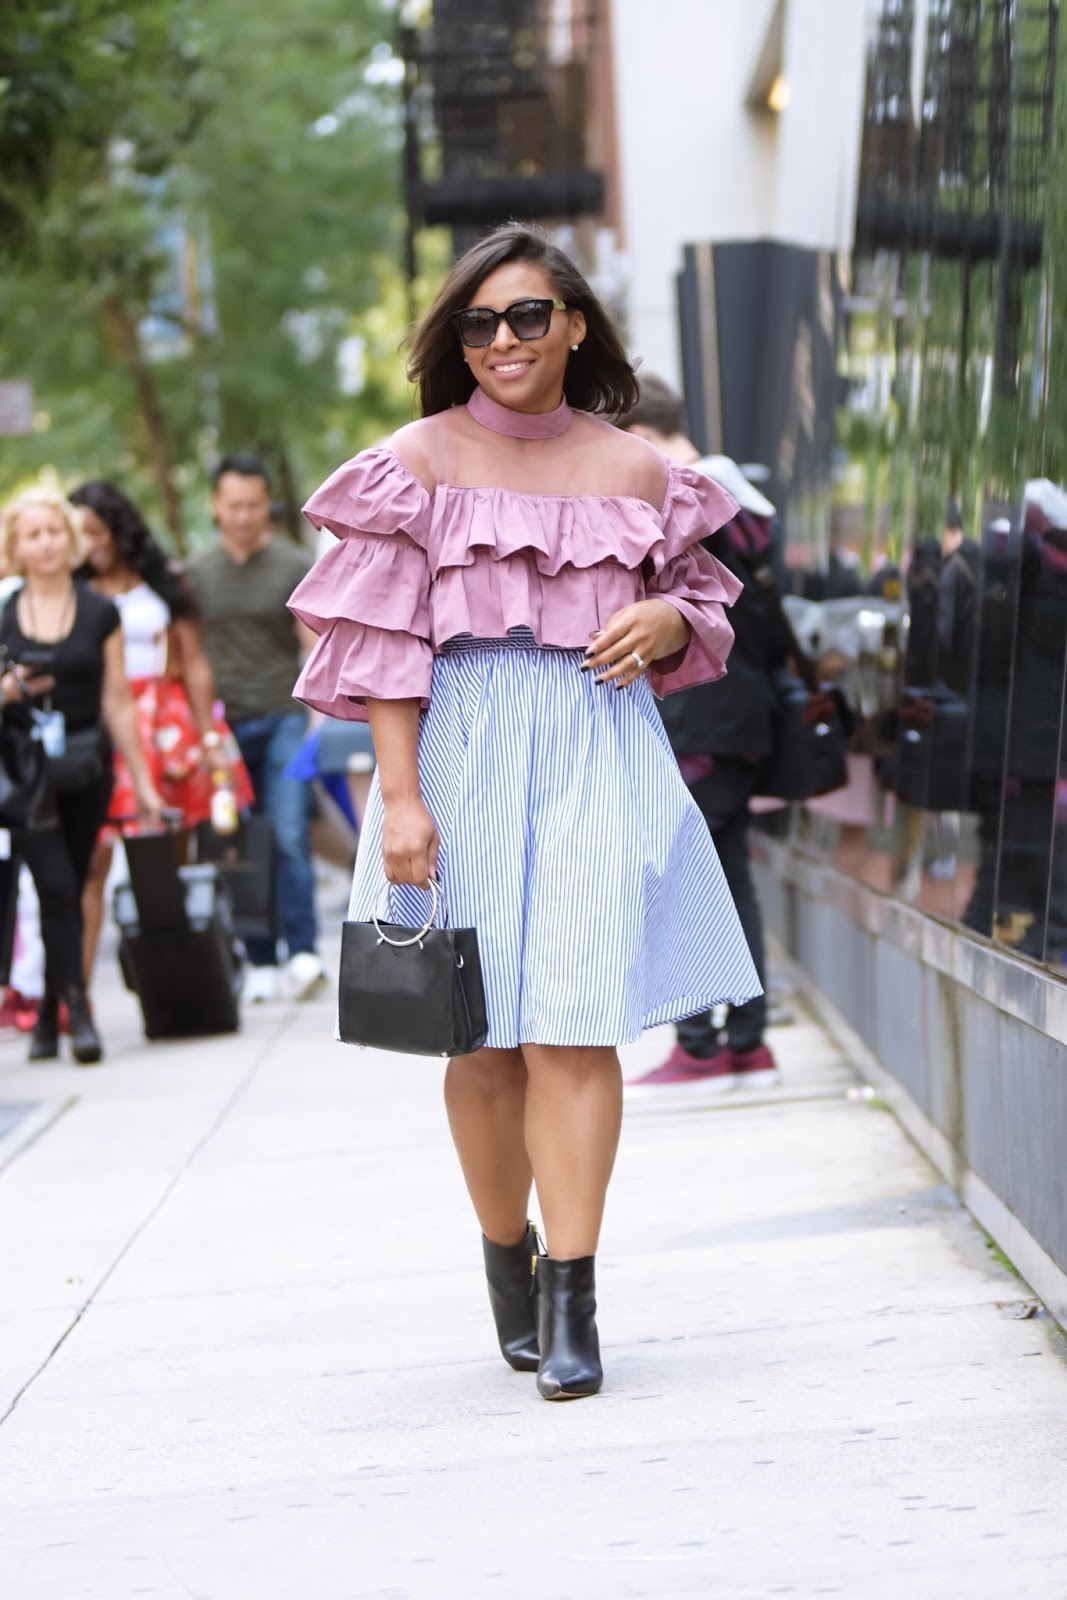 NYFW, fashion week, streetstyle, nyfwstreetstyle, bloggers, new york city, Indonesia diversity